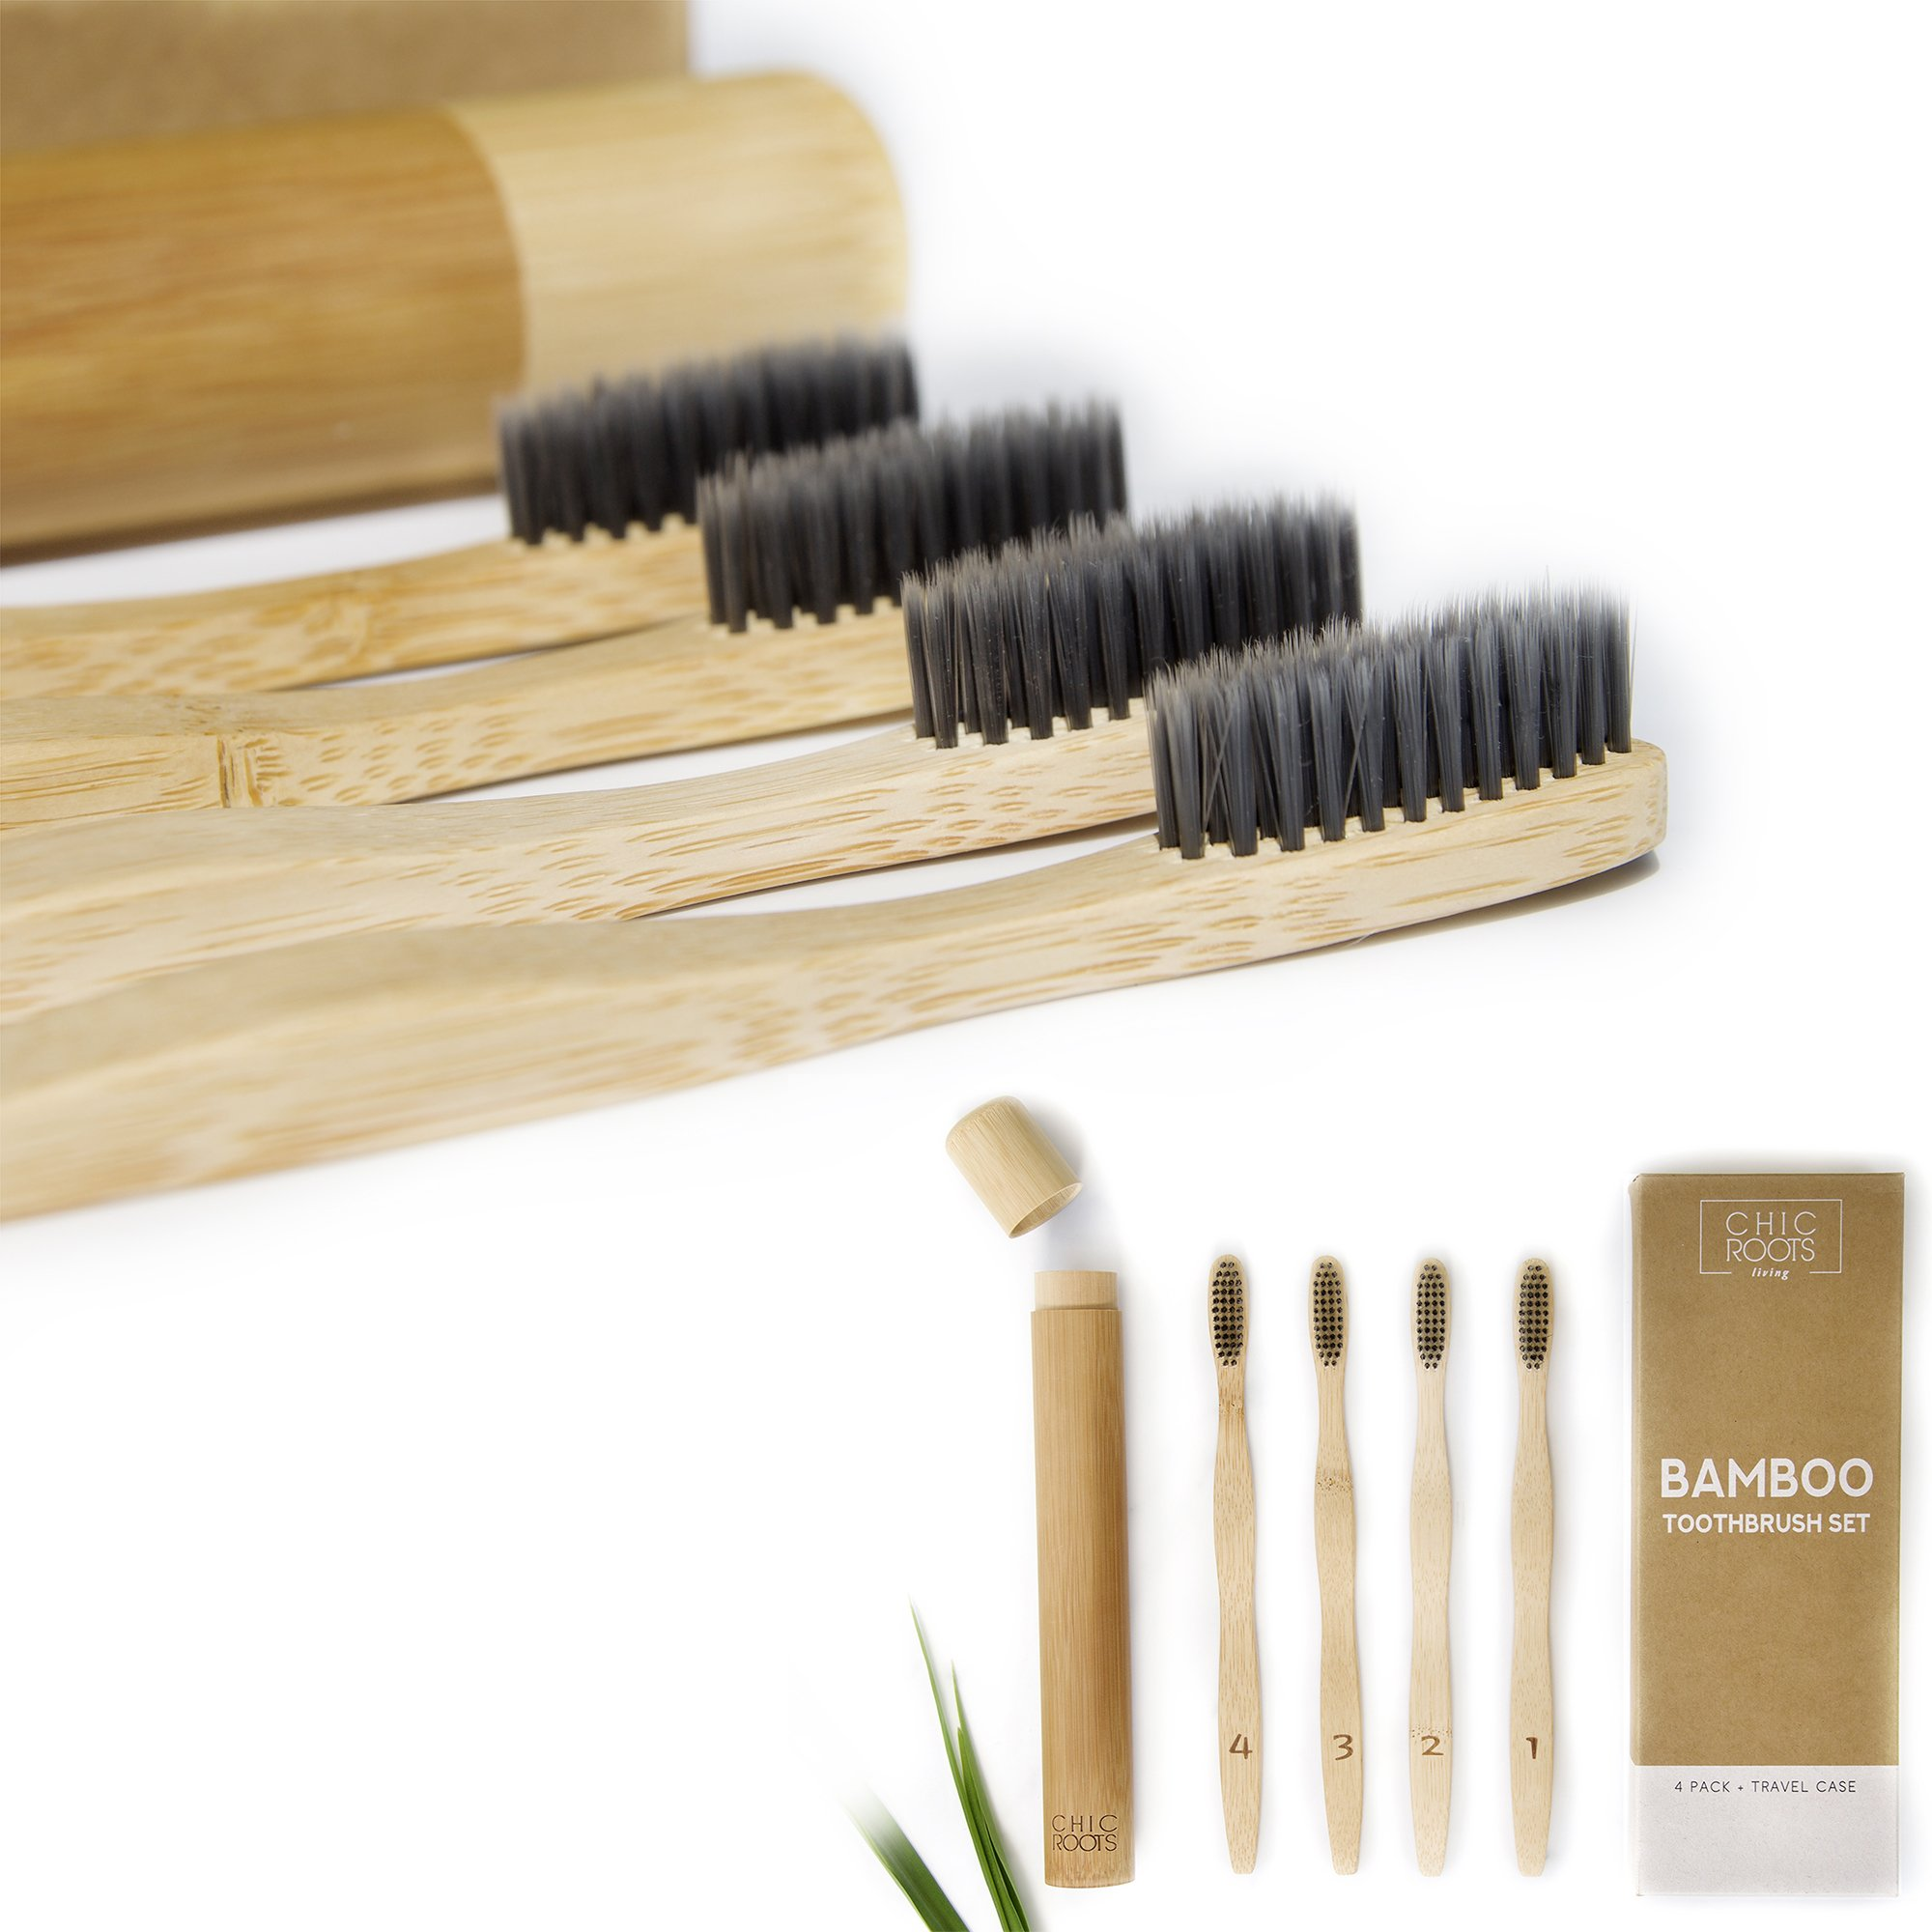 Bamboo Toothbrush Set - 4 pack + Travel Case - Soft Charcoal Bristles for Sensitive Gums - Zero Waste packaging